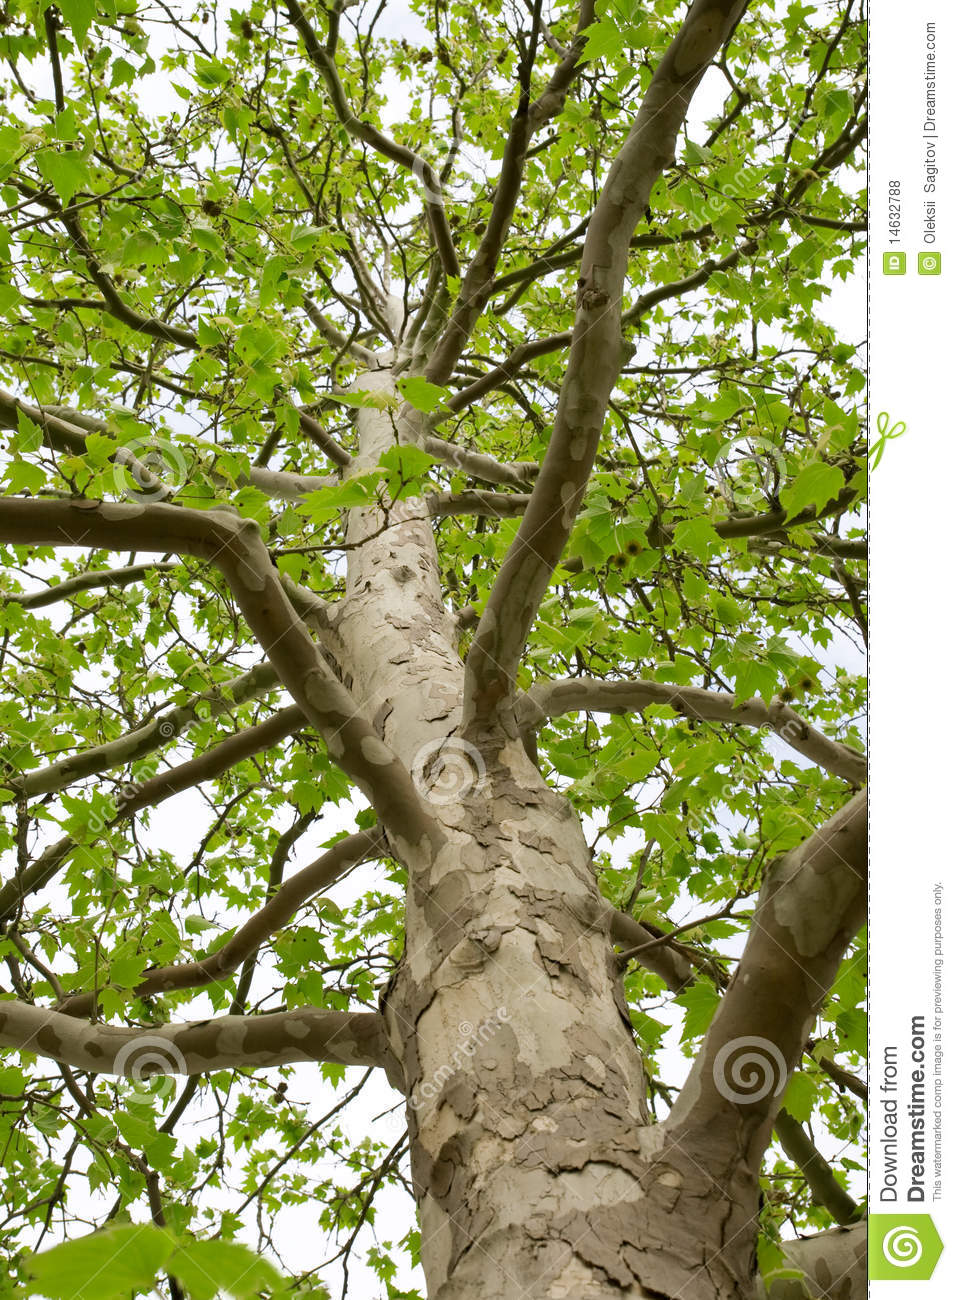 Download The Trunk Of A Tree With Large Branches Stock Photo - Image of tree, bark: 14632788